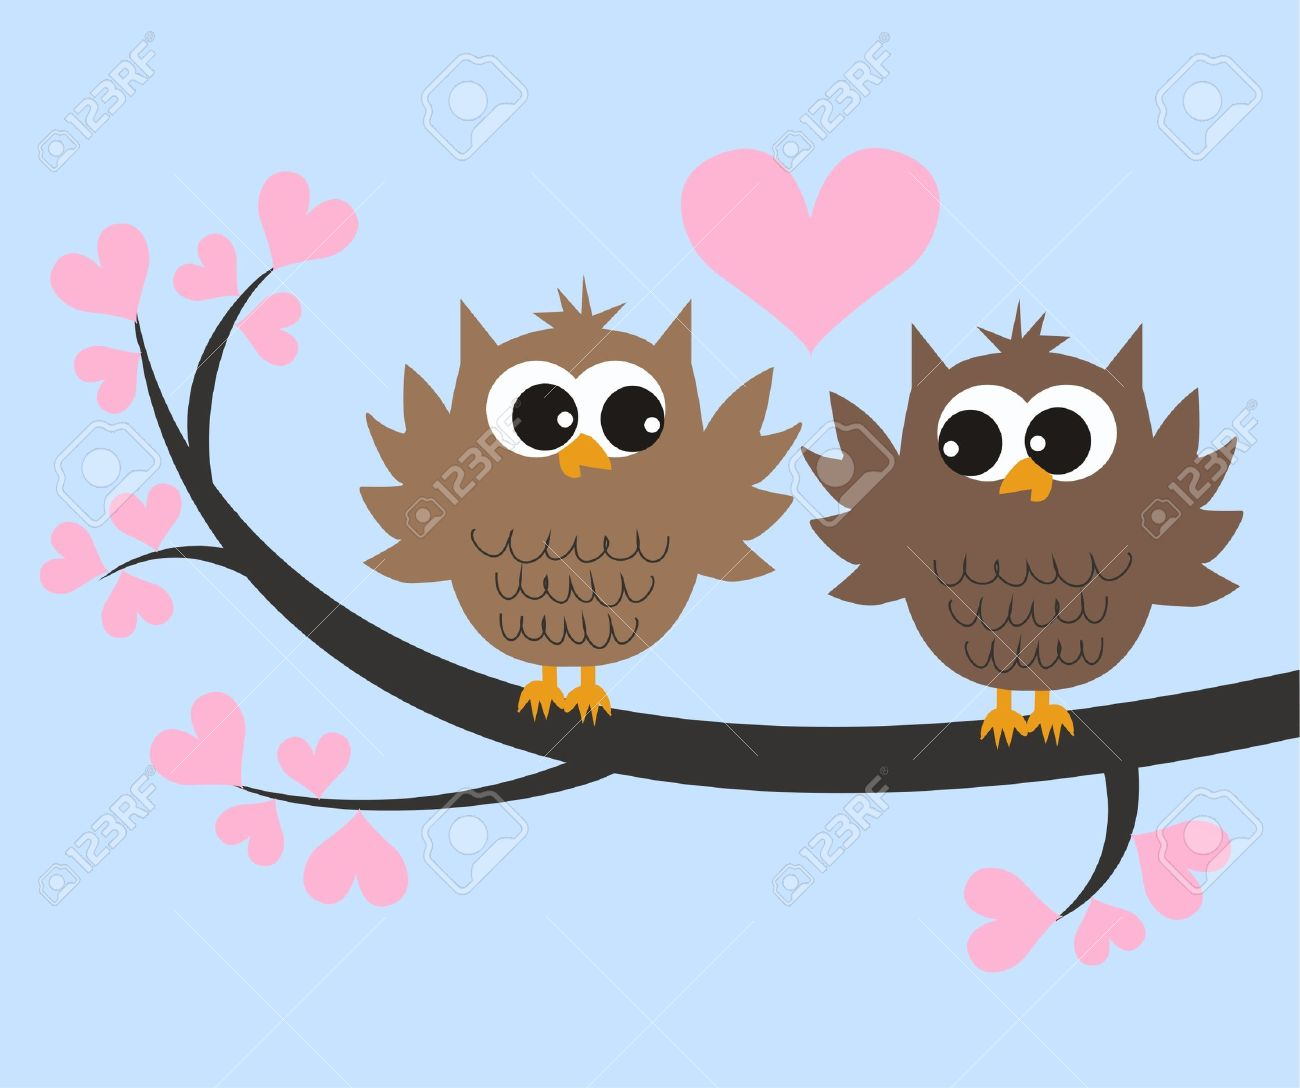 Two Cute Owls In Love Royalty Free Cliparts, Vectors, And Stock.